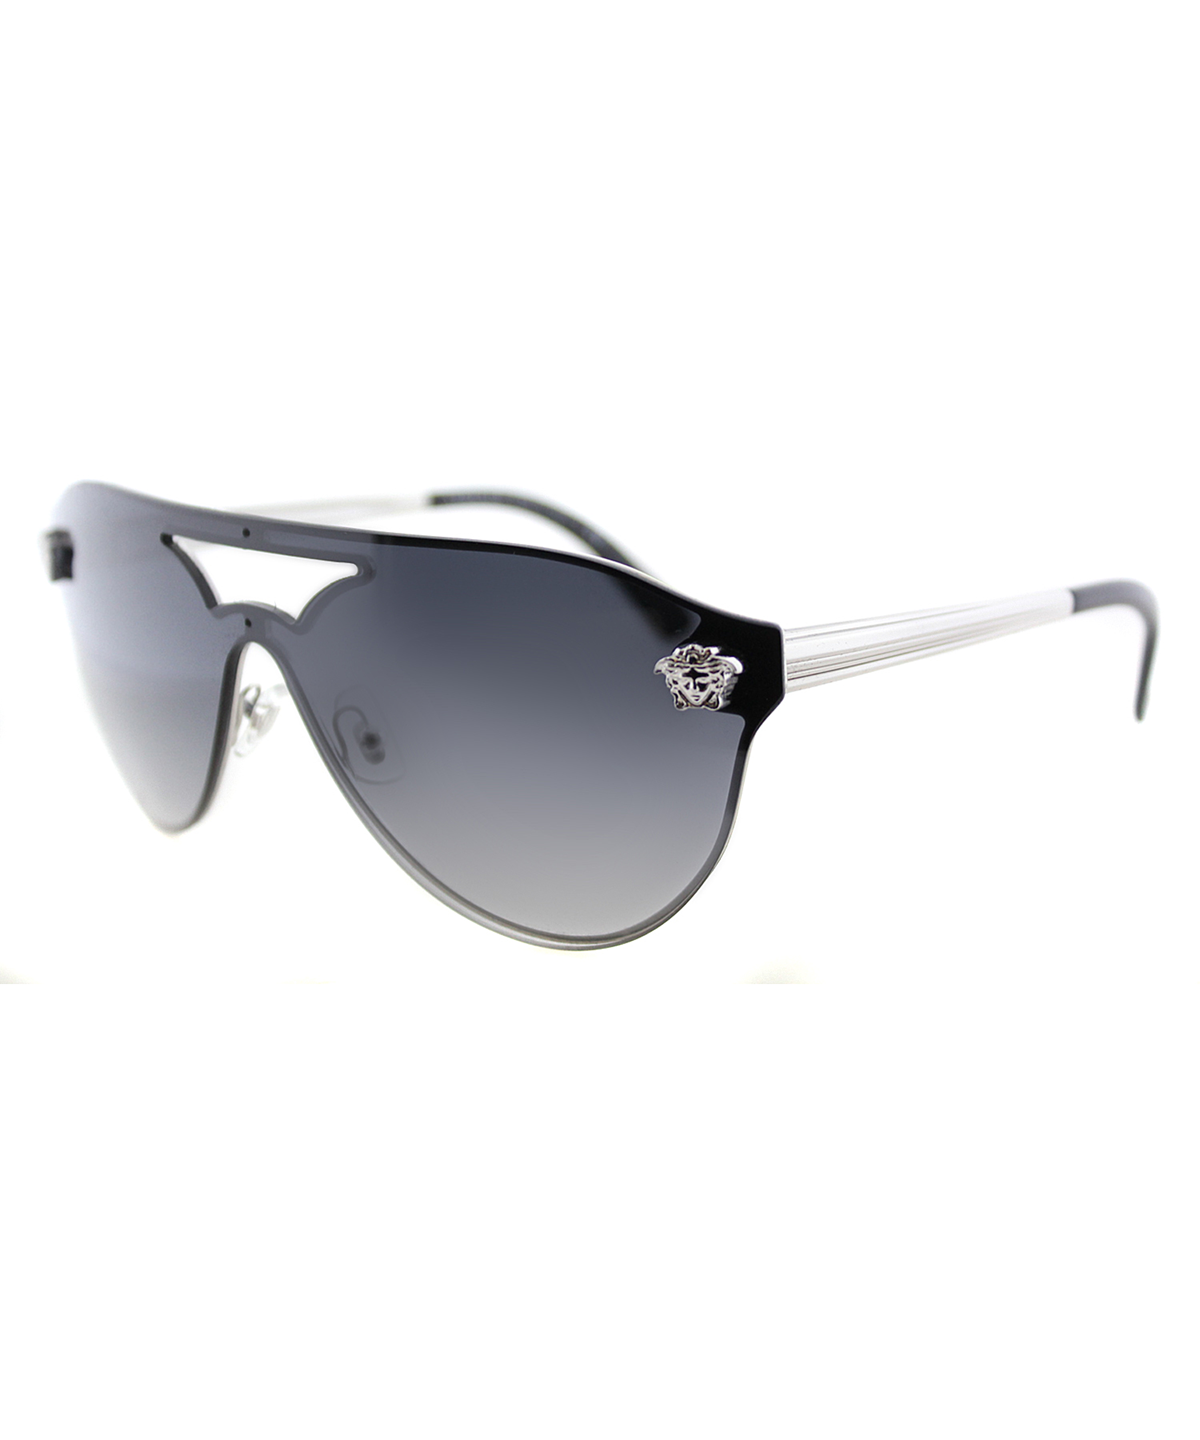 FASHION METAL SUNGLASSES